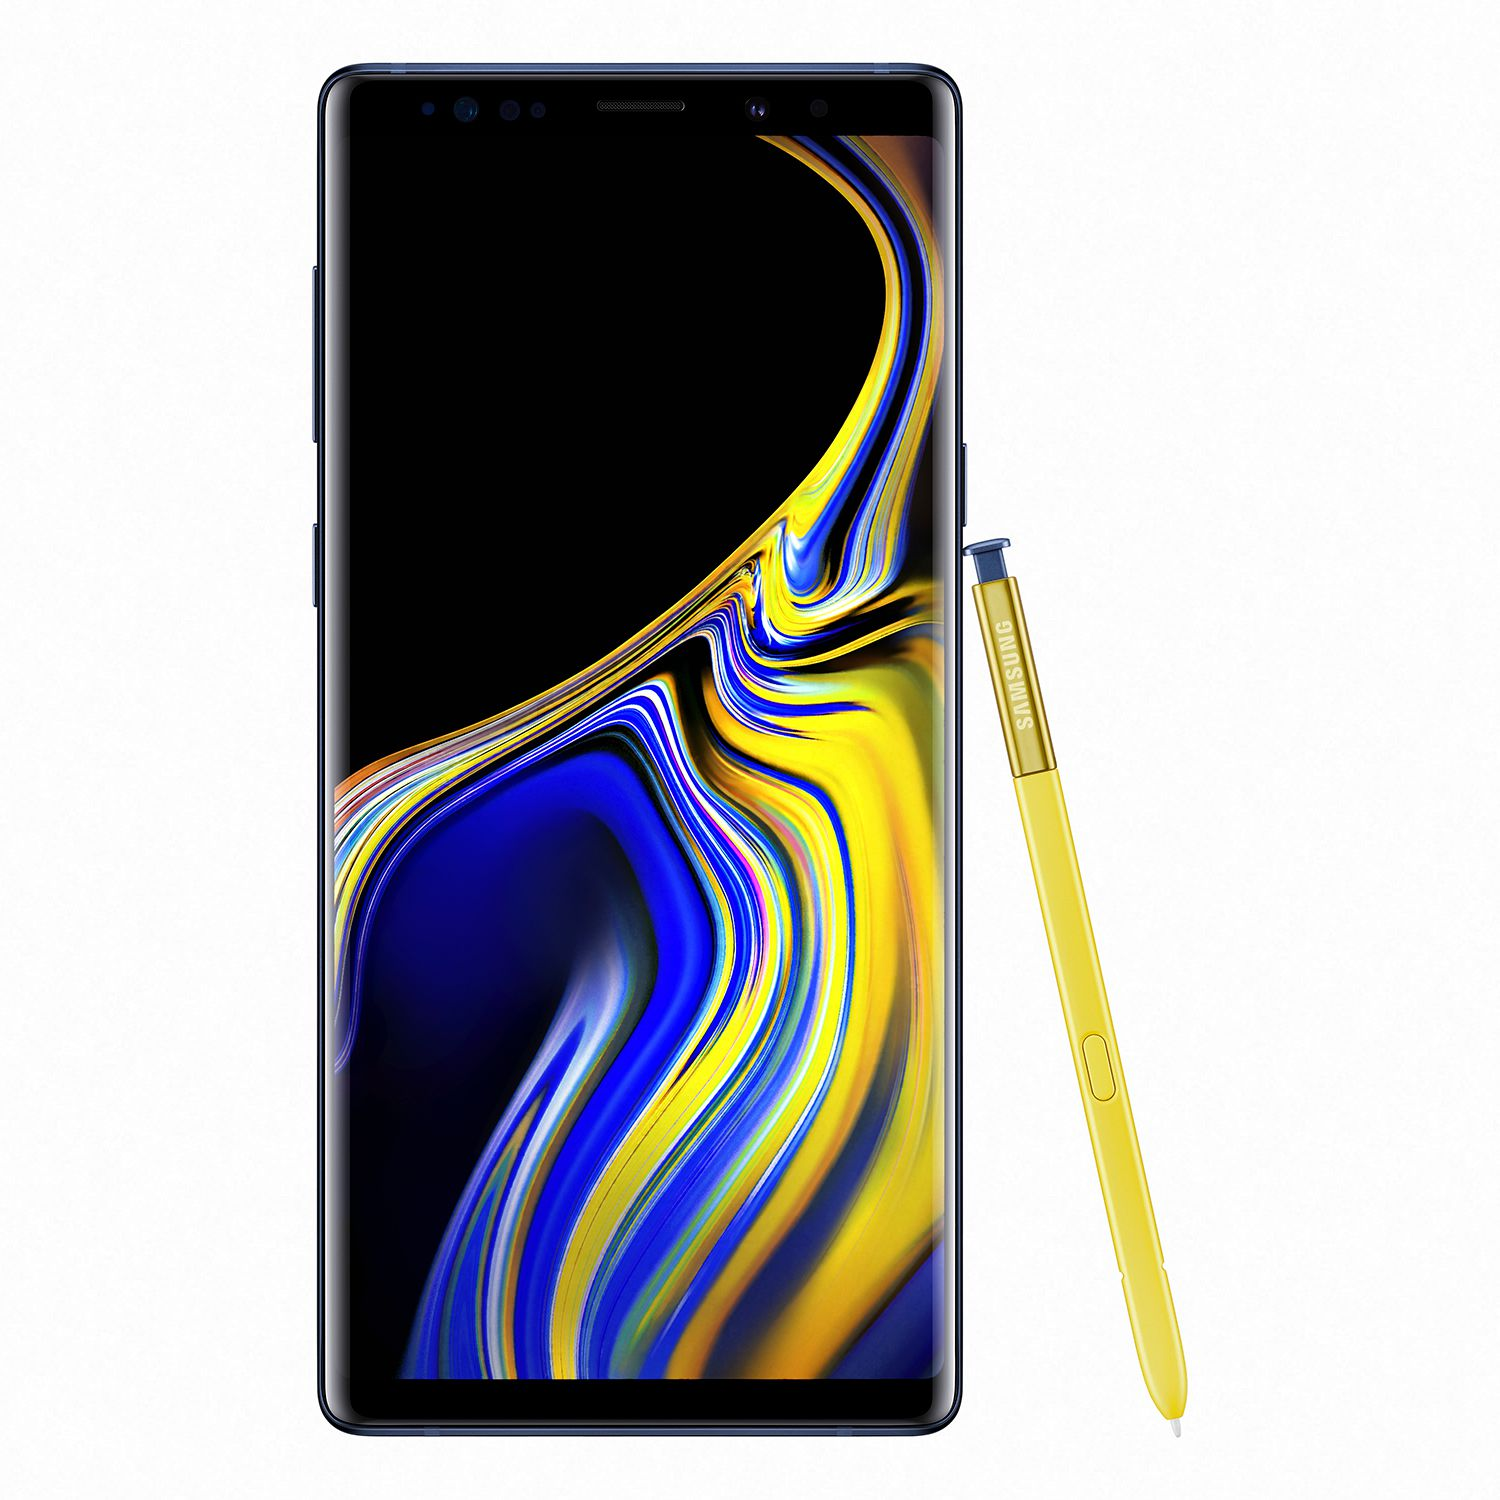 The 10 Best S Pen Apps For Galaxy Note 9 and Note 8